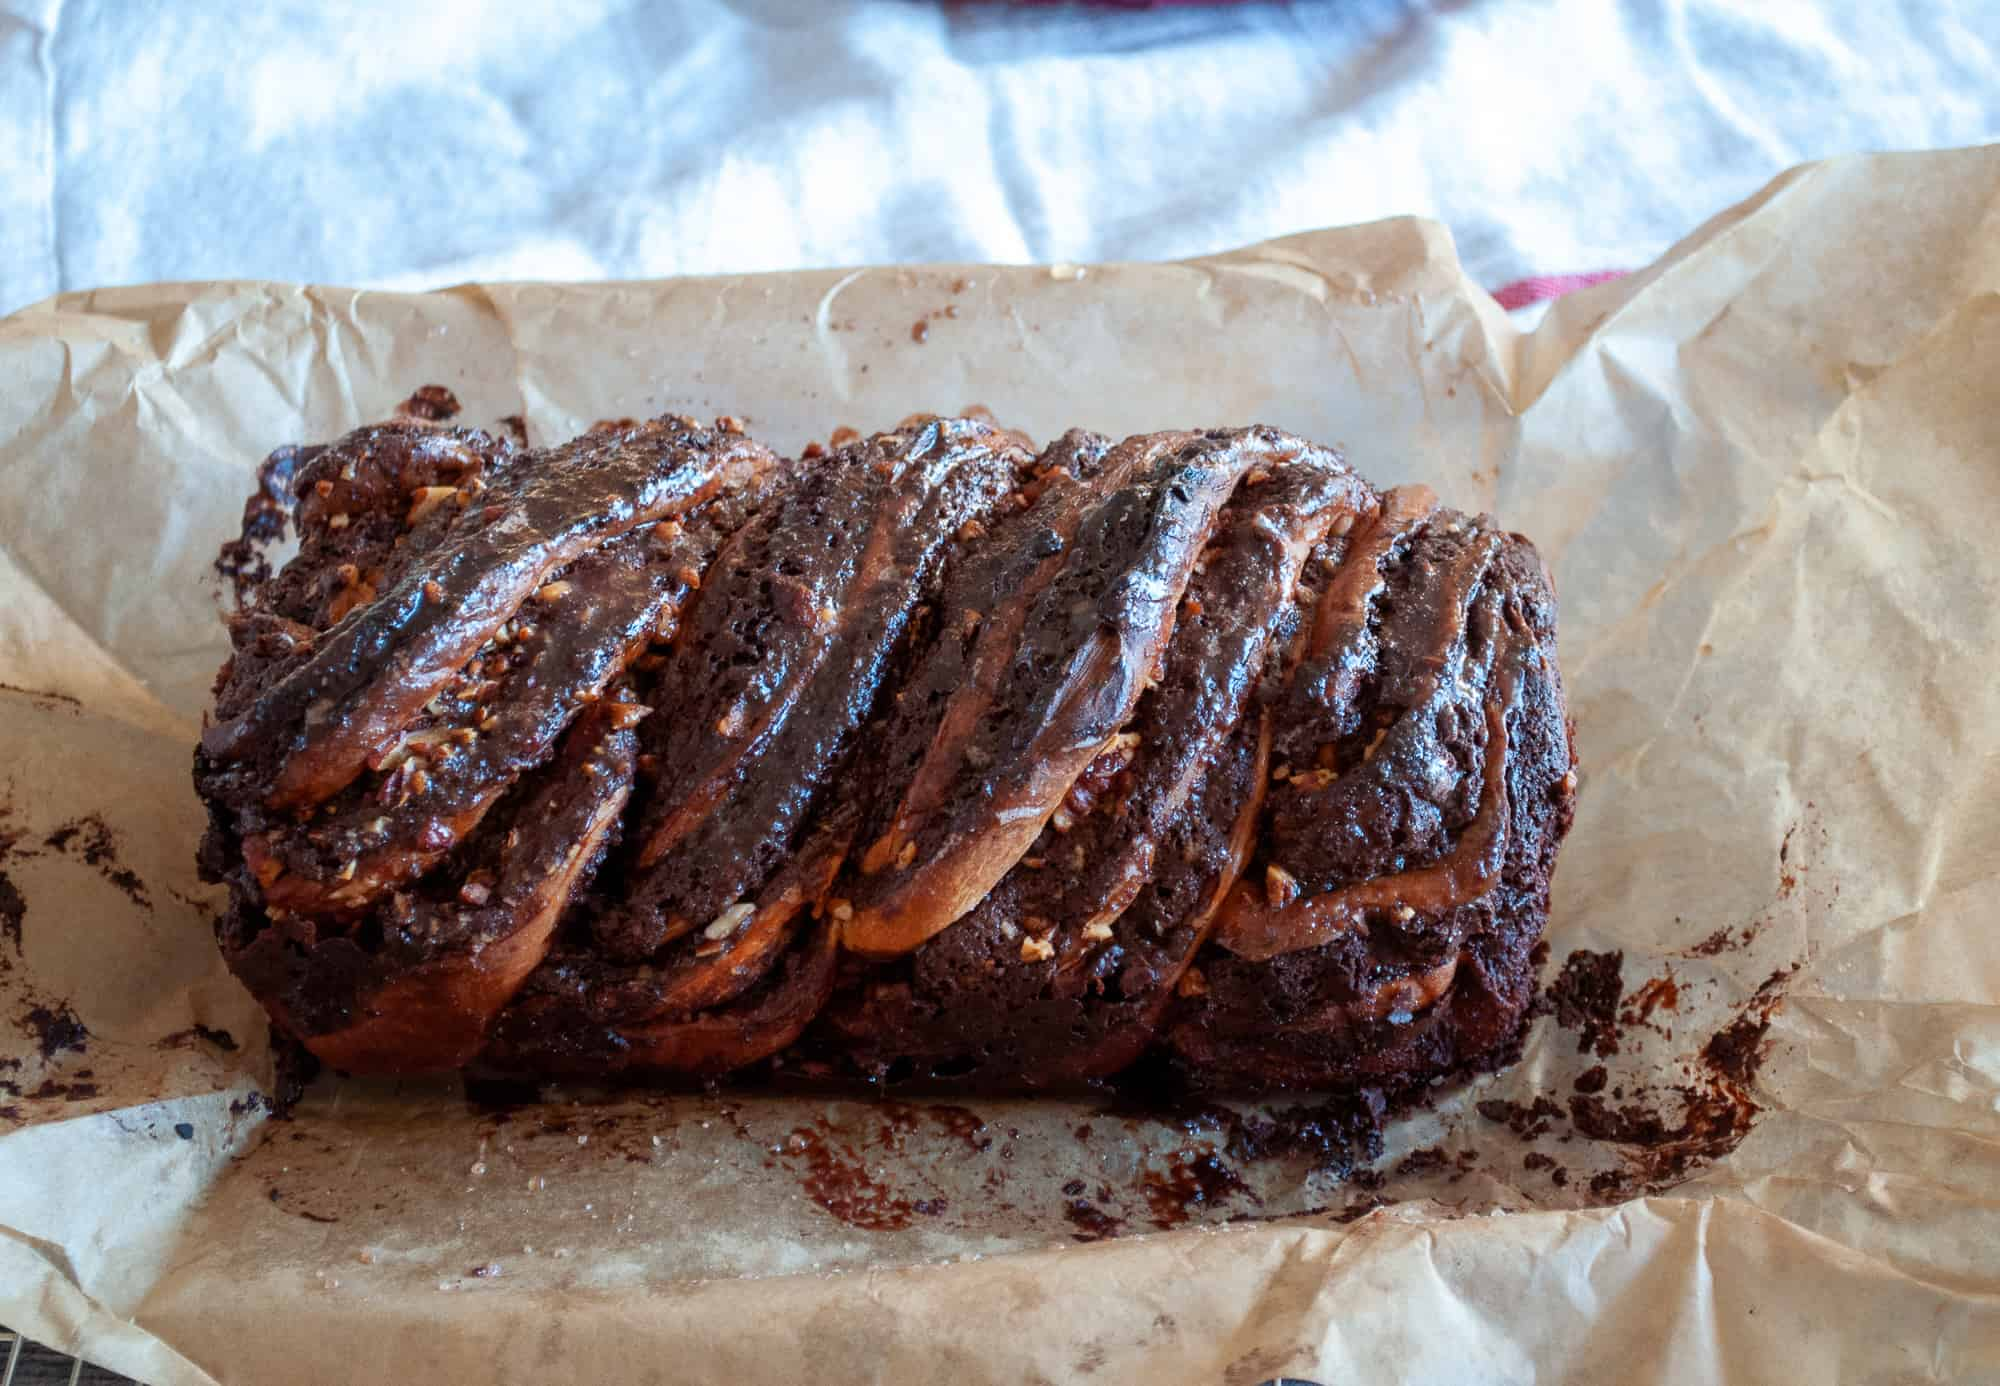 a finished loaf of chocolate babka.